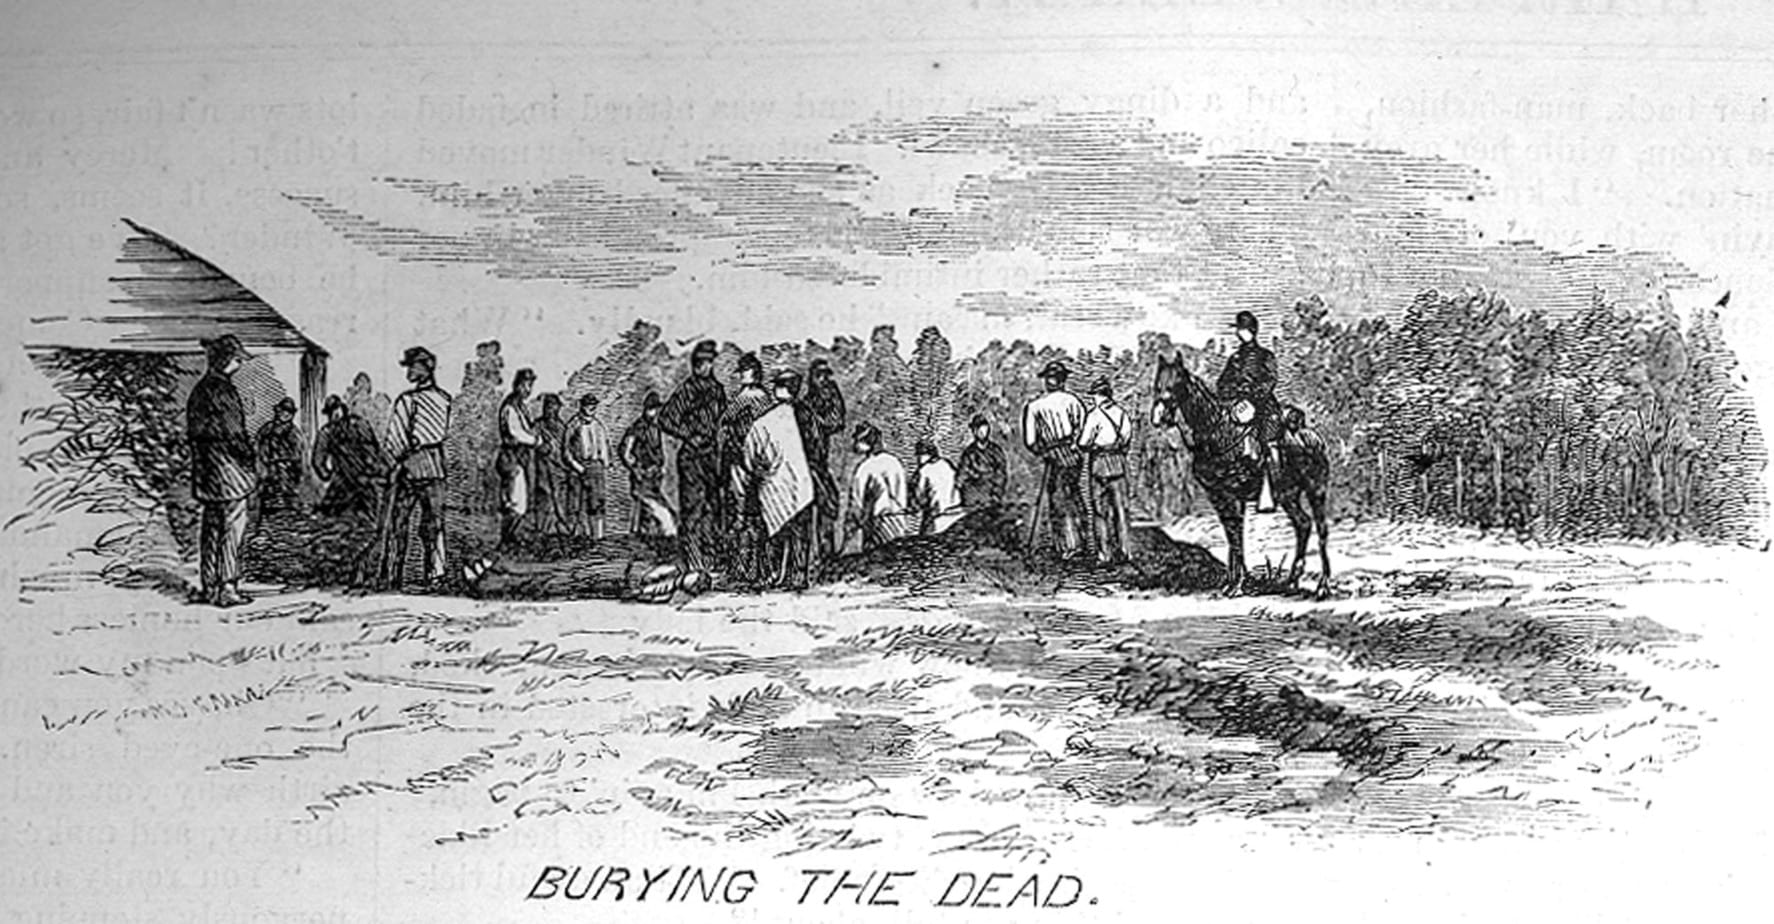 burying-the-dead-2080